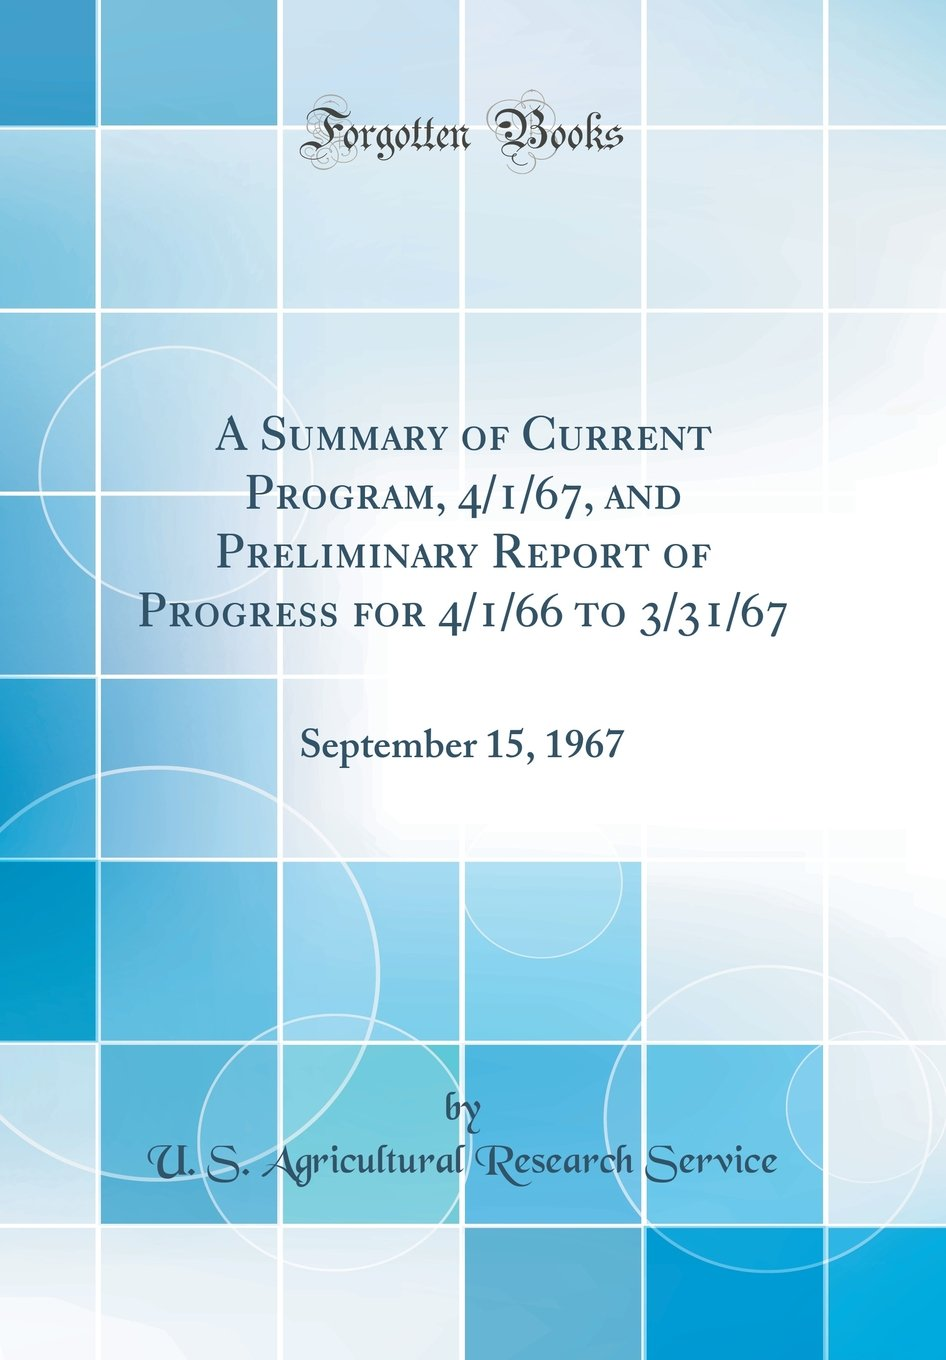 A Summary of Current Program, 4/1/67, and Preliminary Report of Progress for 4/1/66 to 3/31/67: September 15, 1967 (Classic Reprint) pdf epub